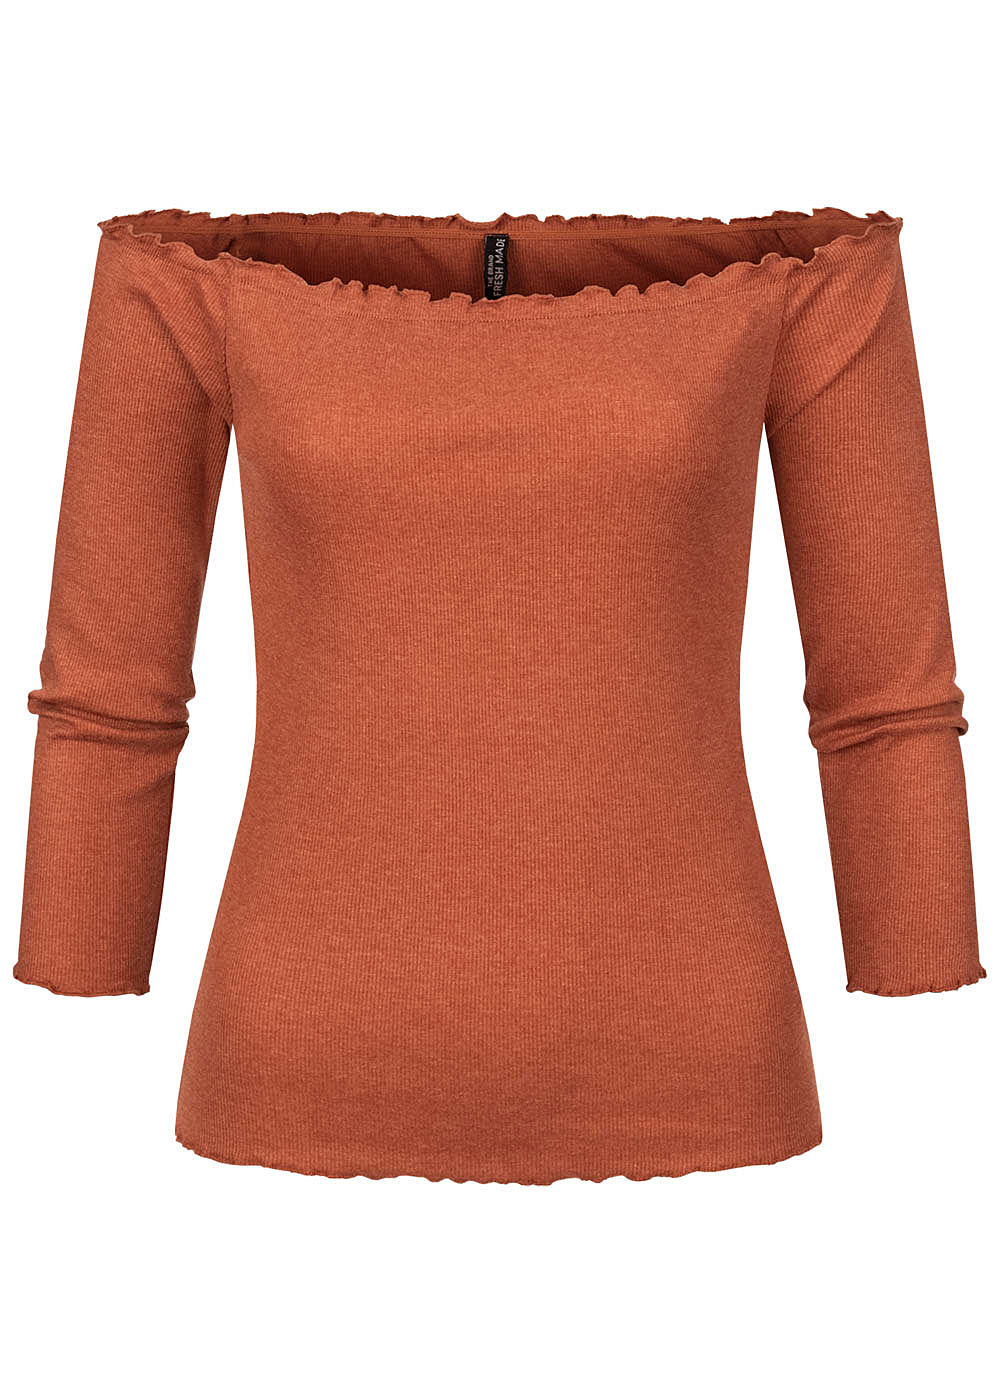 Fresh Made Damen 3/4 Arm Fine Rib Off-Shoulder Longsleeve mit Frilldetails rusty orange - Art.-Nr.: 20094165-XL-OR